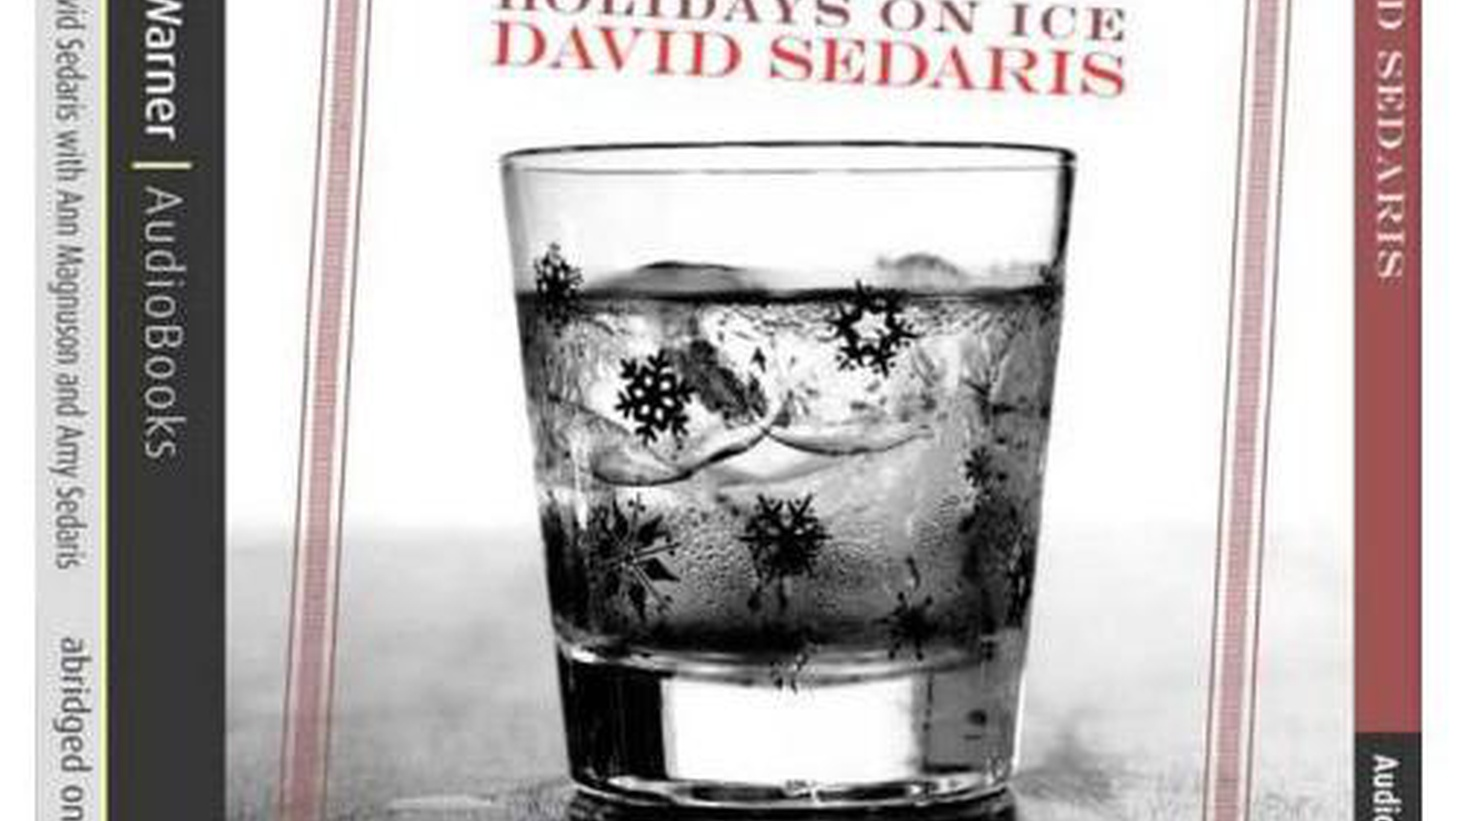 One of our Christmas shows from previous years. Stories from David Sedaris' book of Christmas stories, Holidays on Ice, read onstage by David, Julia Sweeney and actor Matt Malloy. Taped in front of a live audience in Los Angeles, California.